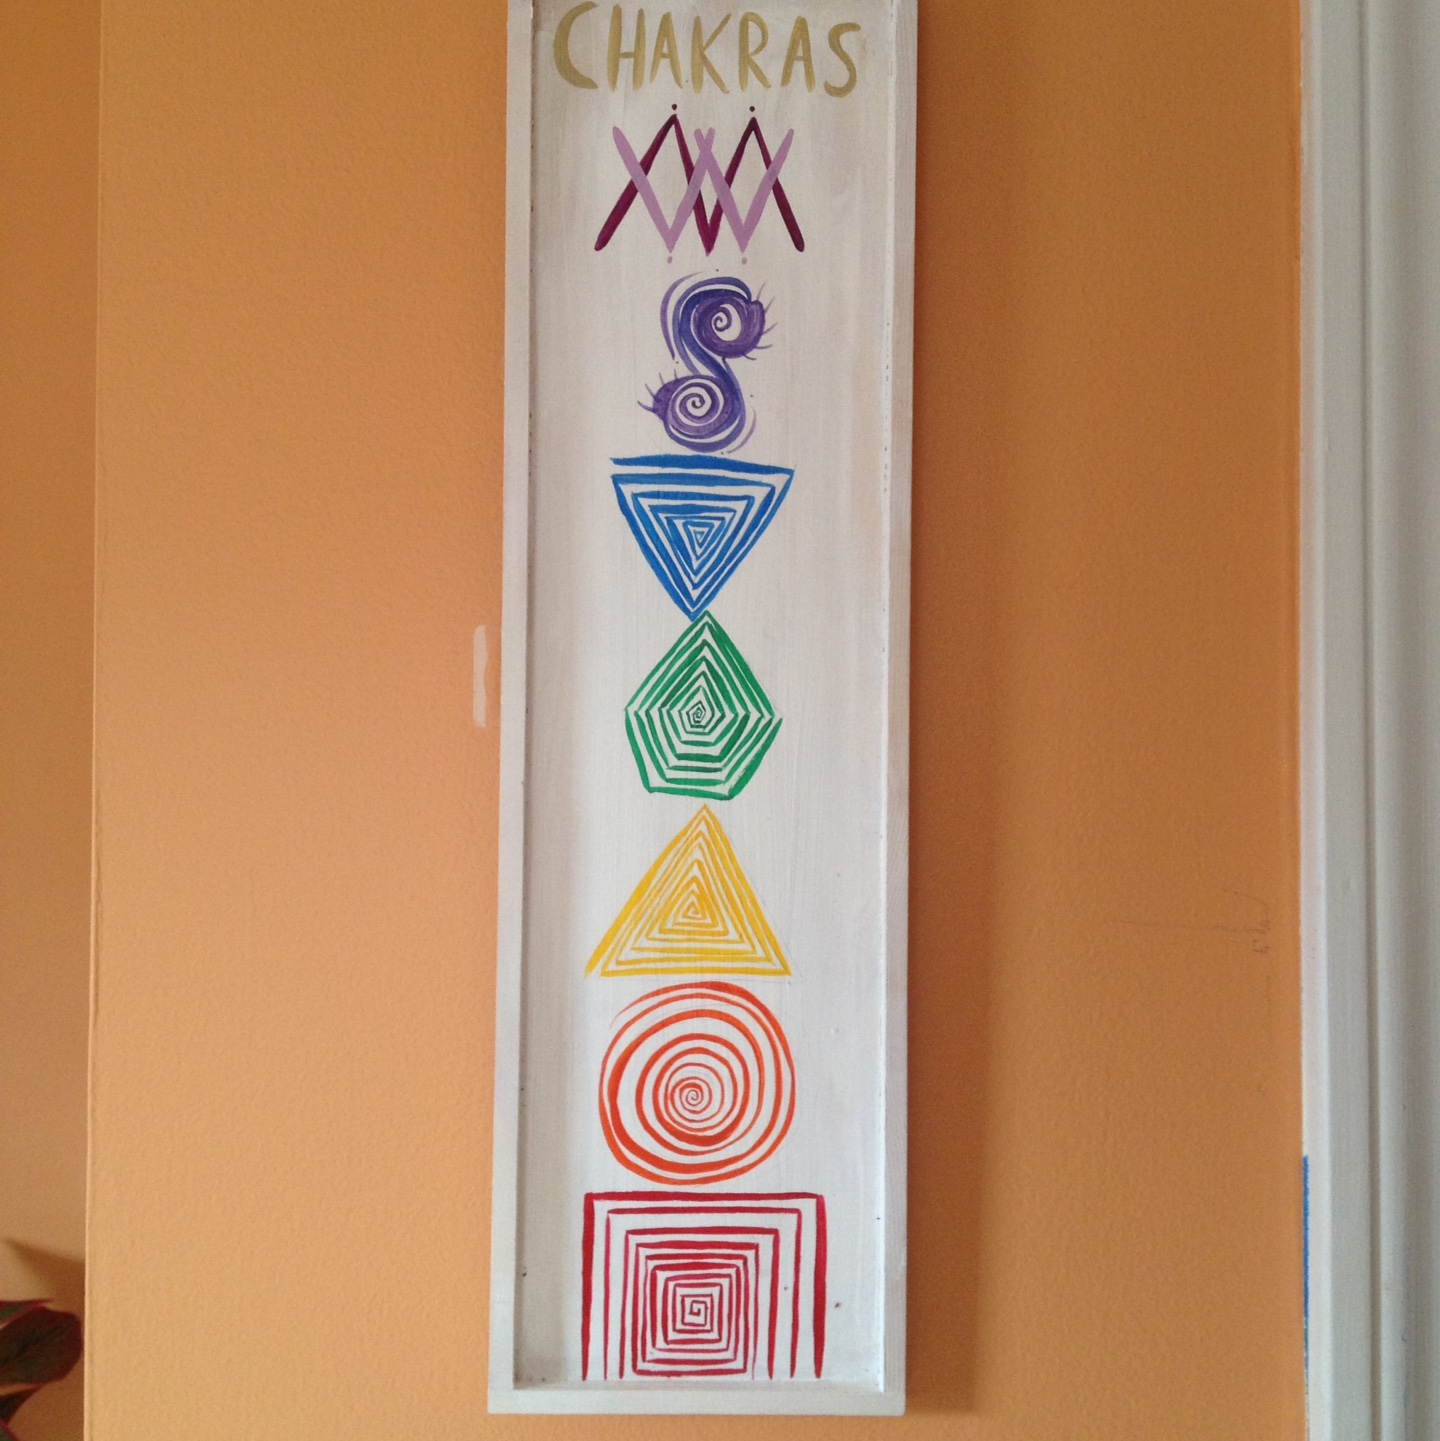 Chakras Wall Art 17 5x5inches Acrylic On Wood Depop